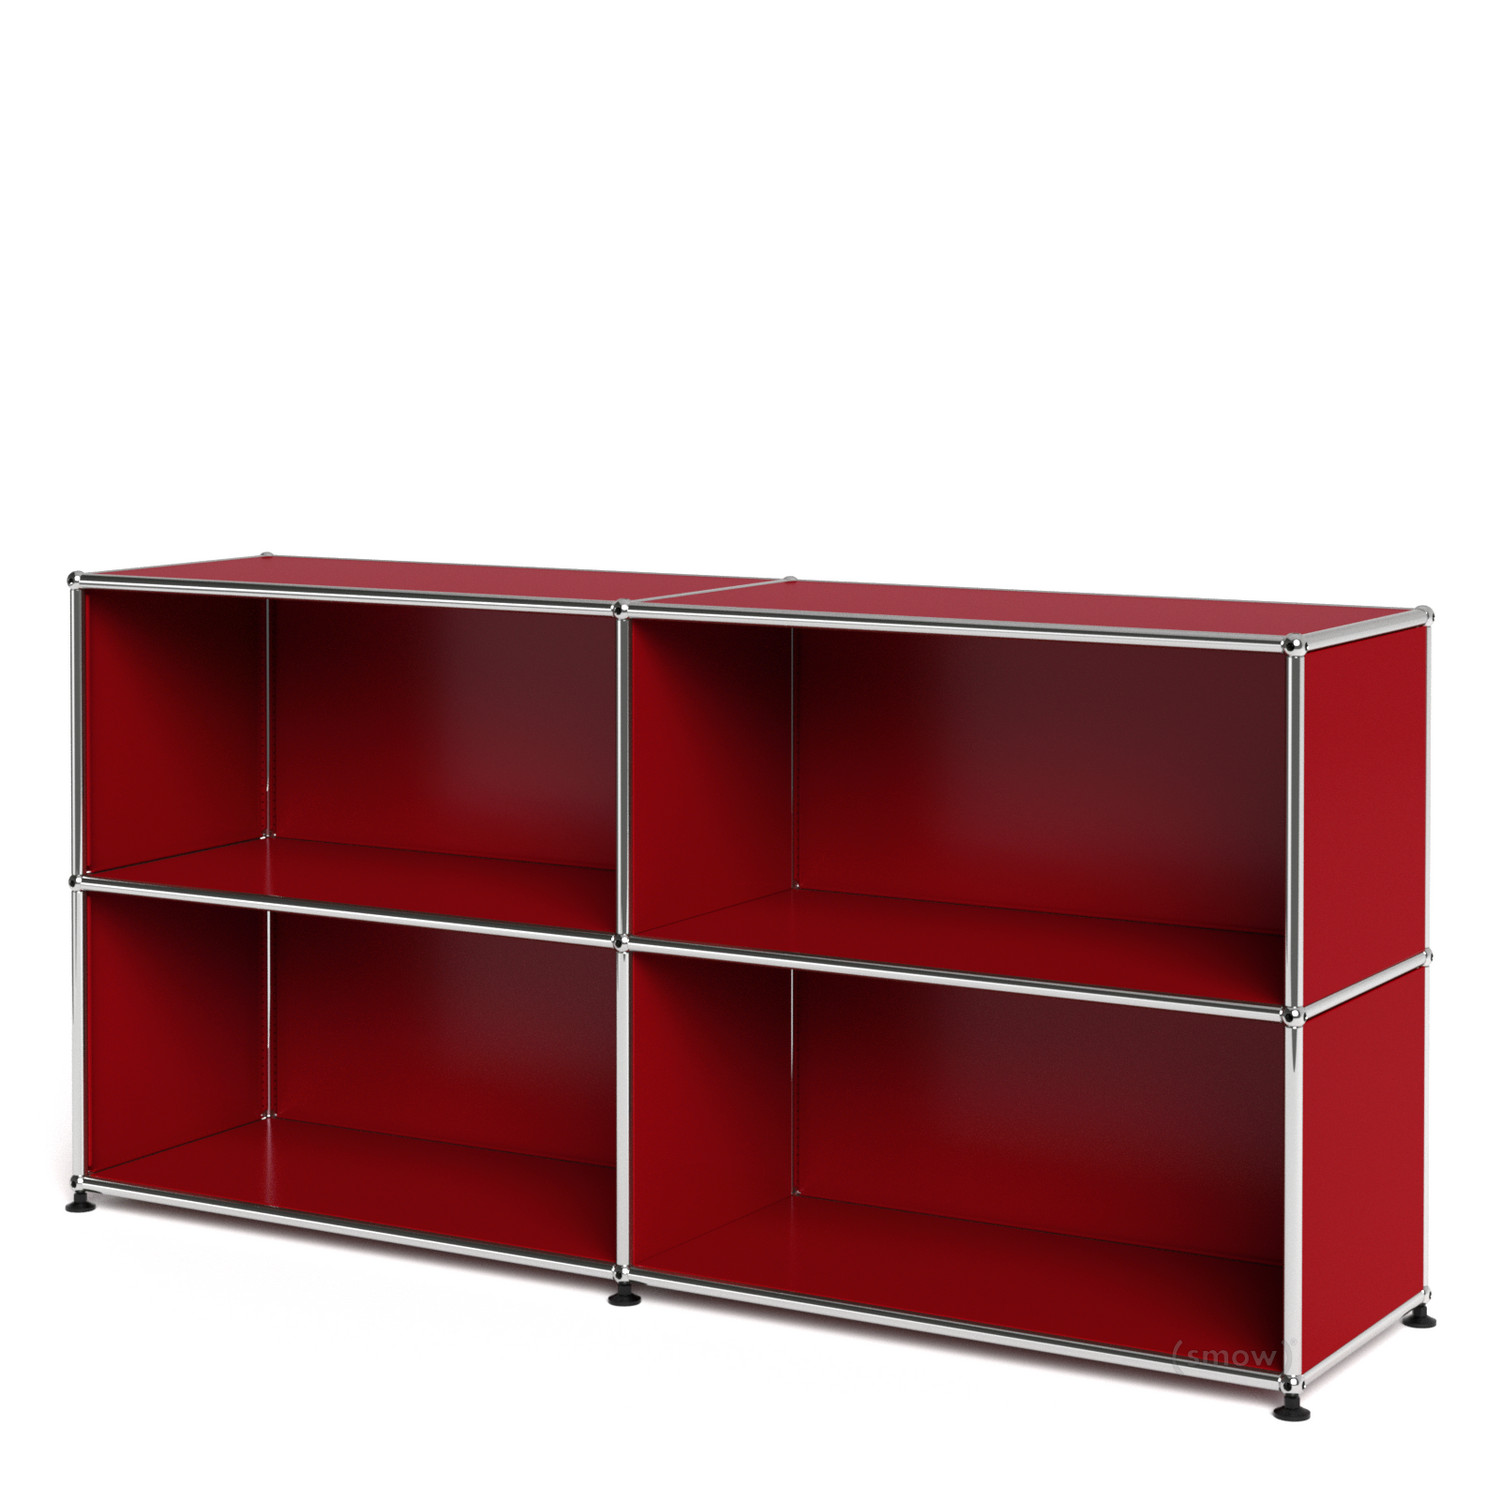 usm haller sideboard l open usm ruby red by fritz haller paul sch rer designer furniture by. Black Bedroom Furniture Sets. Home Design Ideas